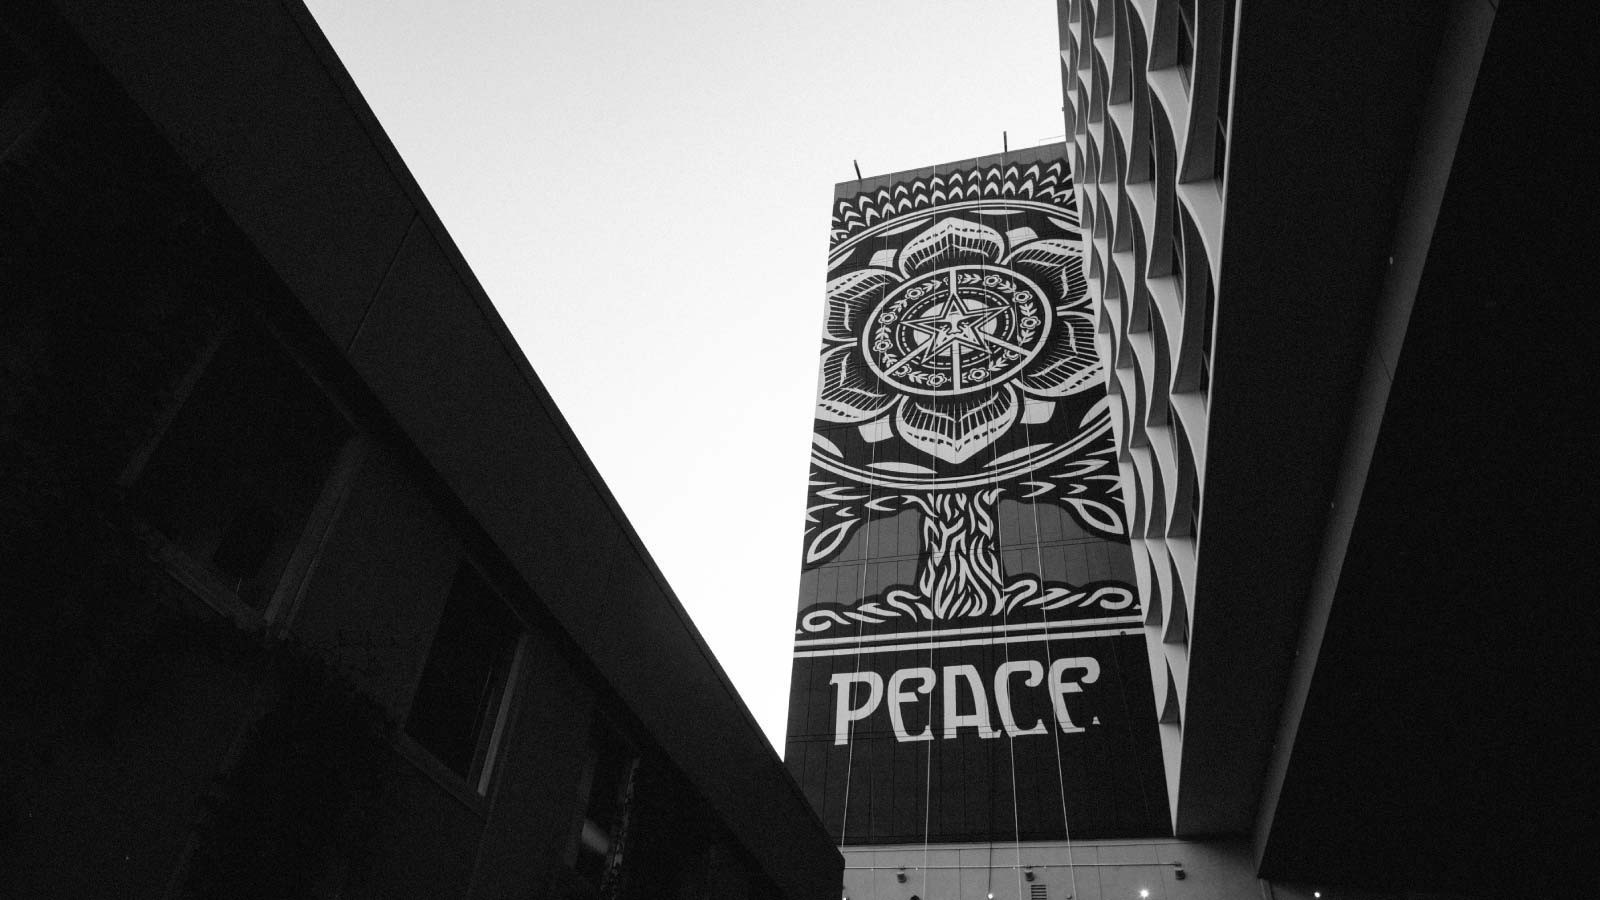 Image of mural by Shepard Fairey